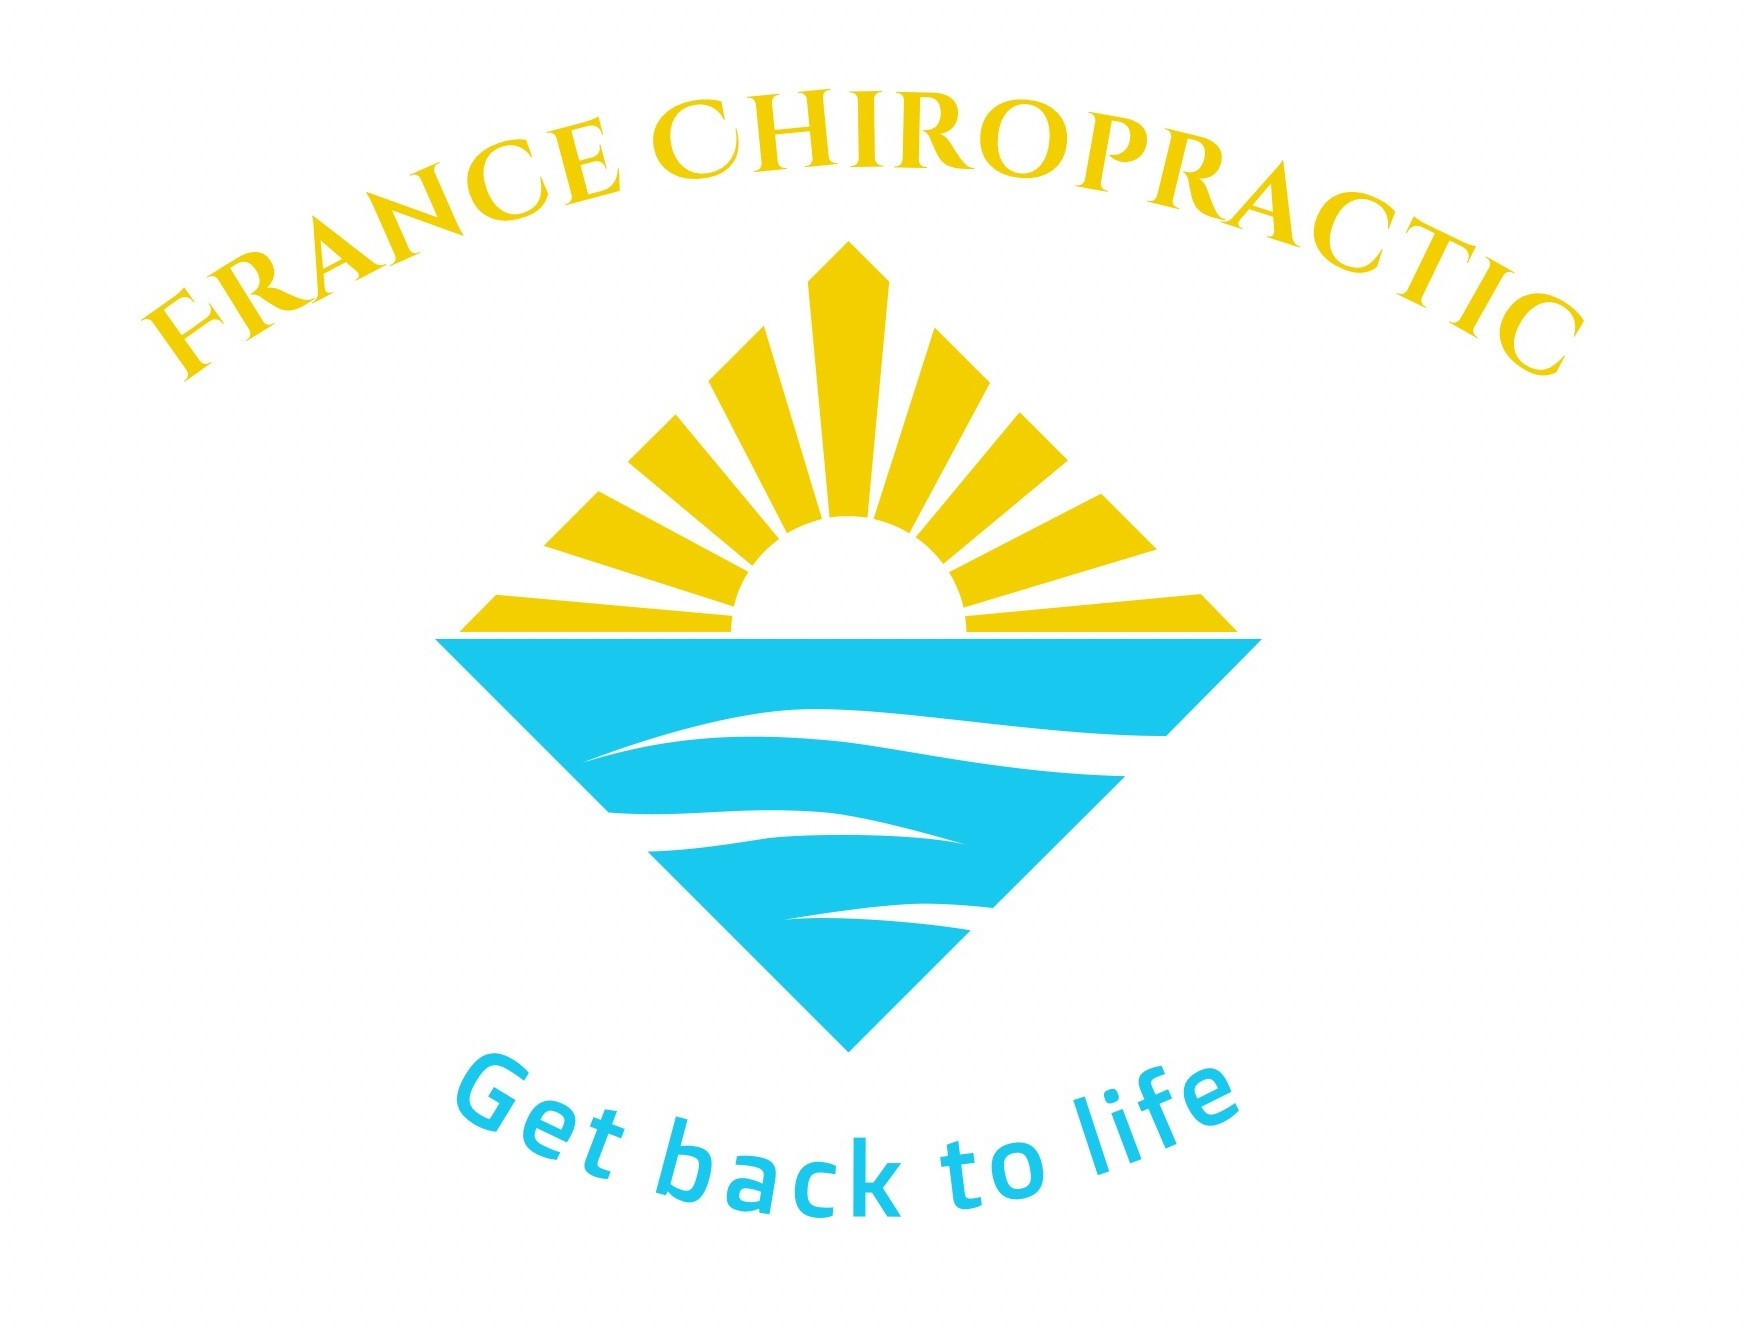 France Chiropractic